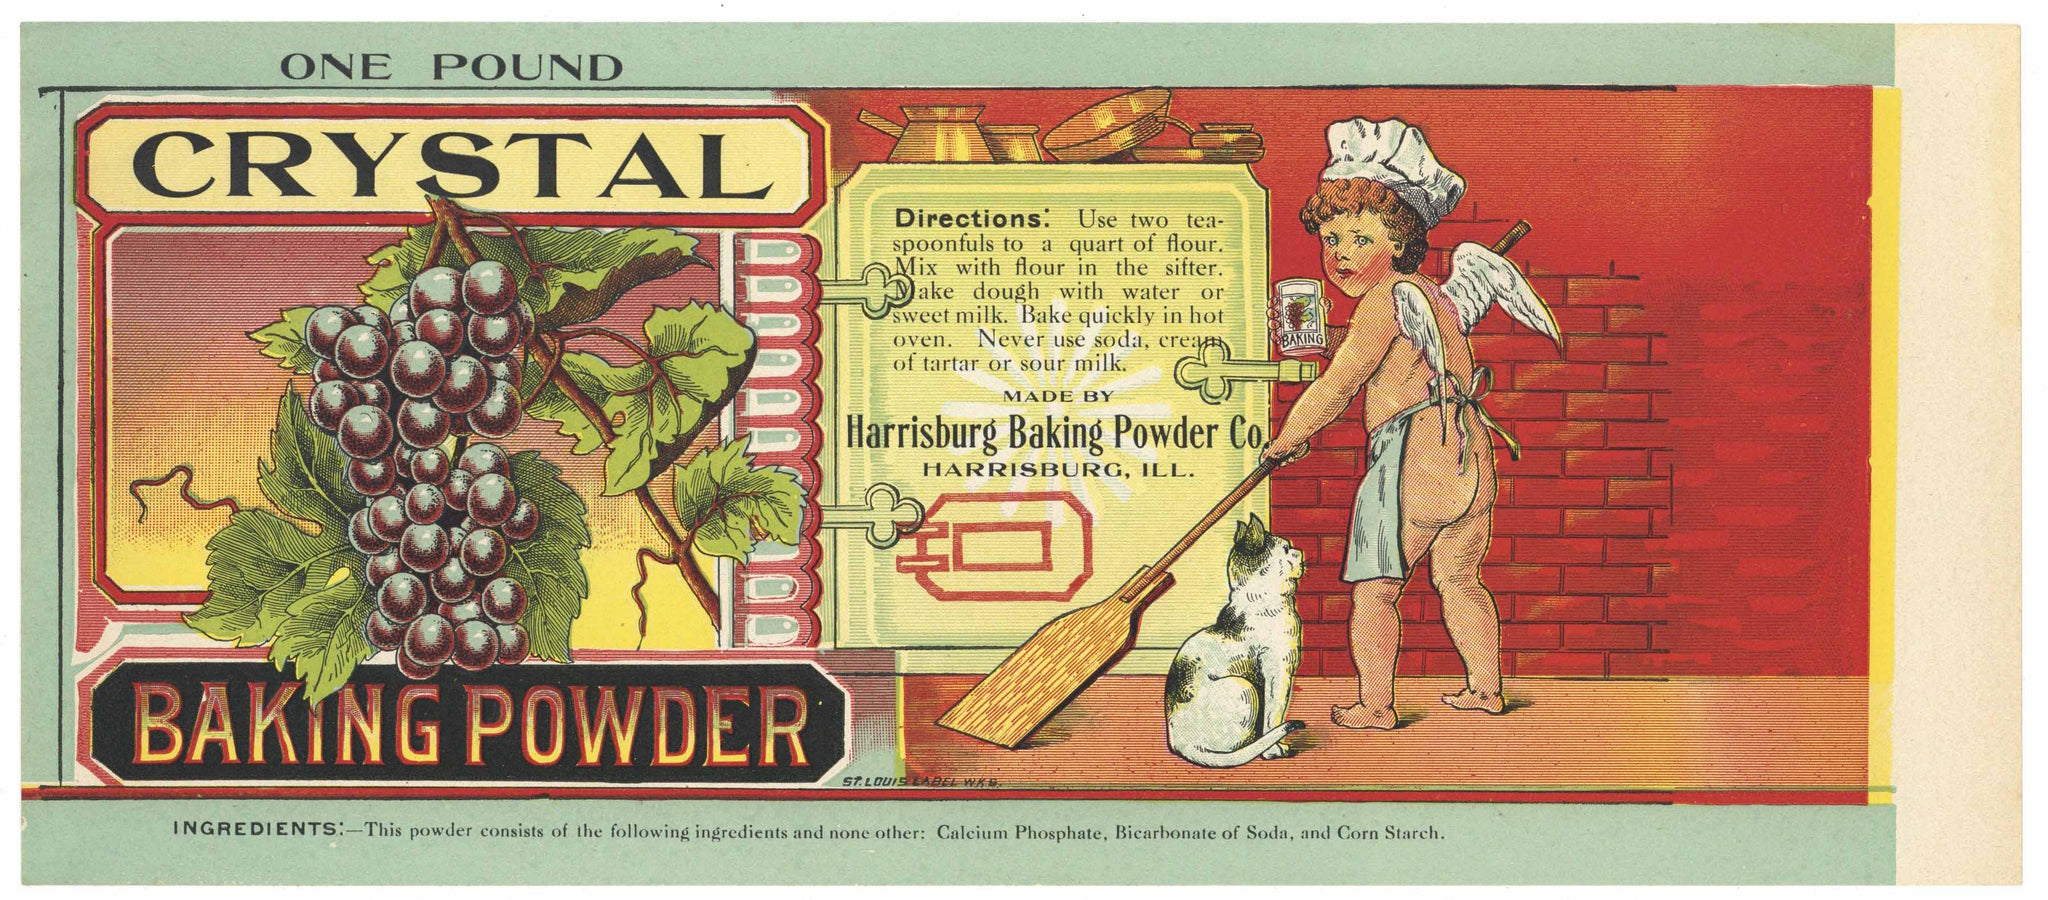 Crystal Brand Harrisburg, Illinois Baking Powder Can Label